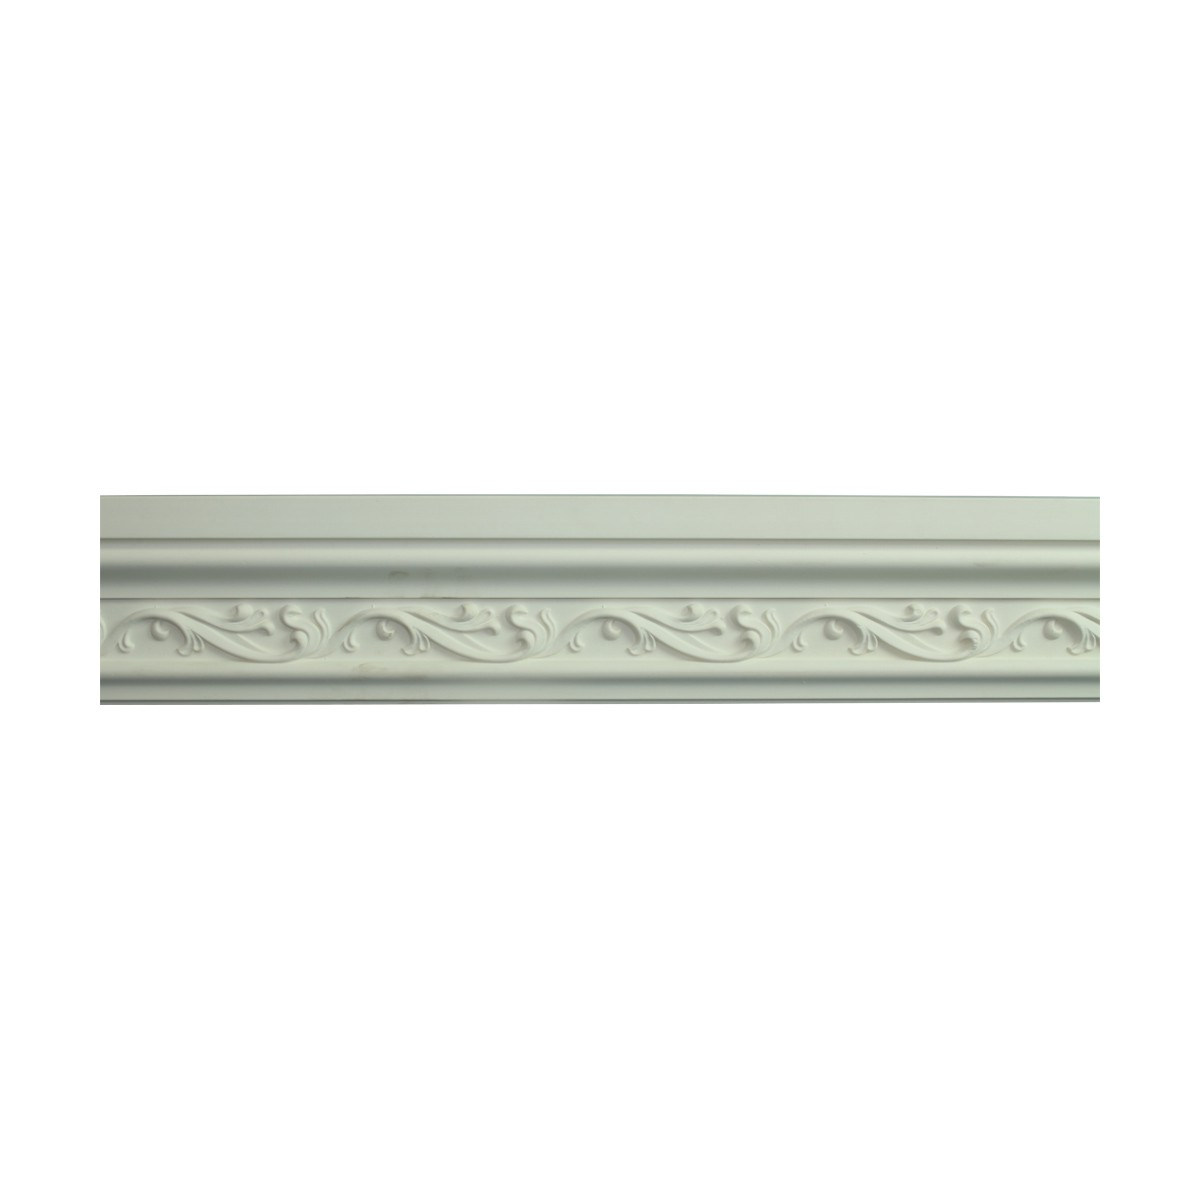 Renovators Supply Crown Molding White Urethane Savanah Design 5 Pieces Totaling 470 Length White PrePrimed Urethane Crown Cornice Molding Cornice Crown Home Depot Ekena Millwork Molding Wall Ceiling Corner Cornice Crown Cove Molding